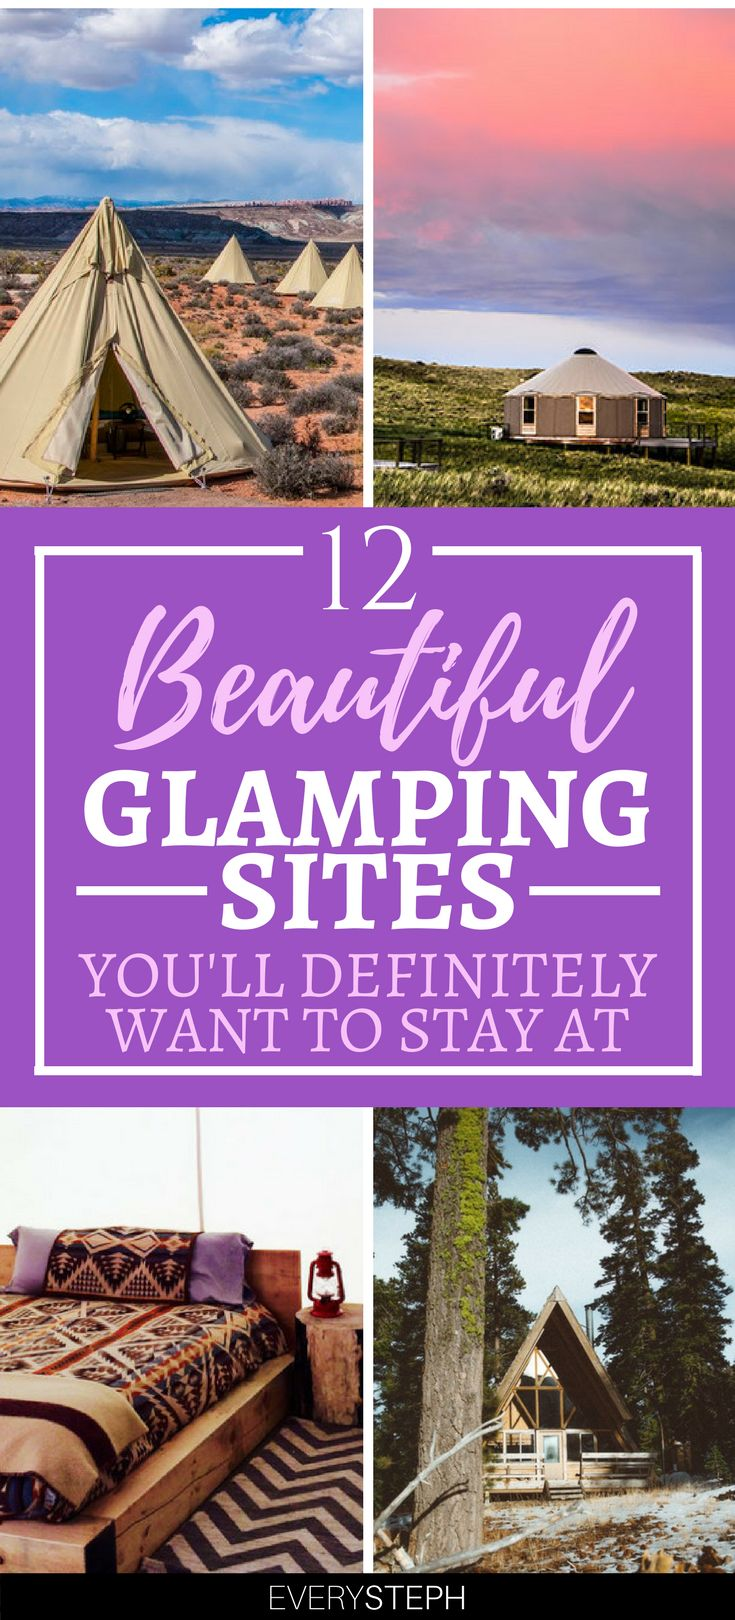 Raise your hand if you love glamping! If you did, then you are going to love the 12 best places to fo glamping in the USA! | where to go glamping | glamping sites luxury | glamping sites in California | glamping New York | glamping US | glamping destinations California | glamping destinations luxury camping | glamping Florida | glamping Utah | glamping California #glamping - via @everysteph